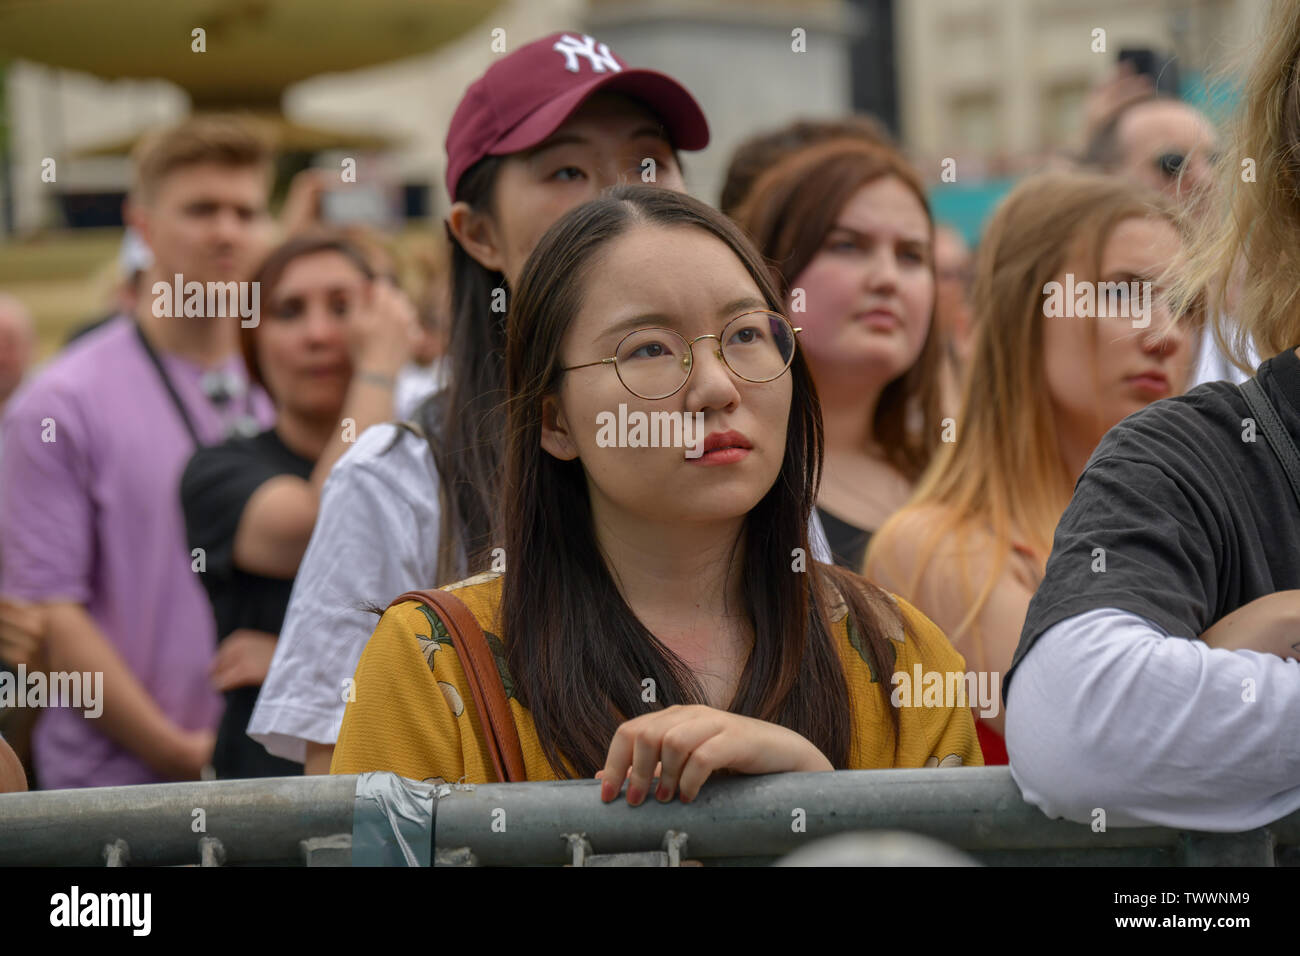 London, UK. 23rd June, 2019. West End Live 2019 - Day 2 in Trafalgar Square, on 23 June 2019, London, UK. Credit: Picture Capital/Alamy Live News - Stock Image